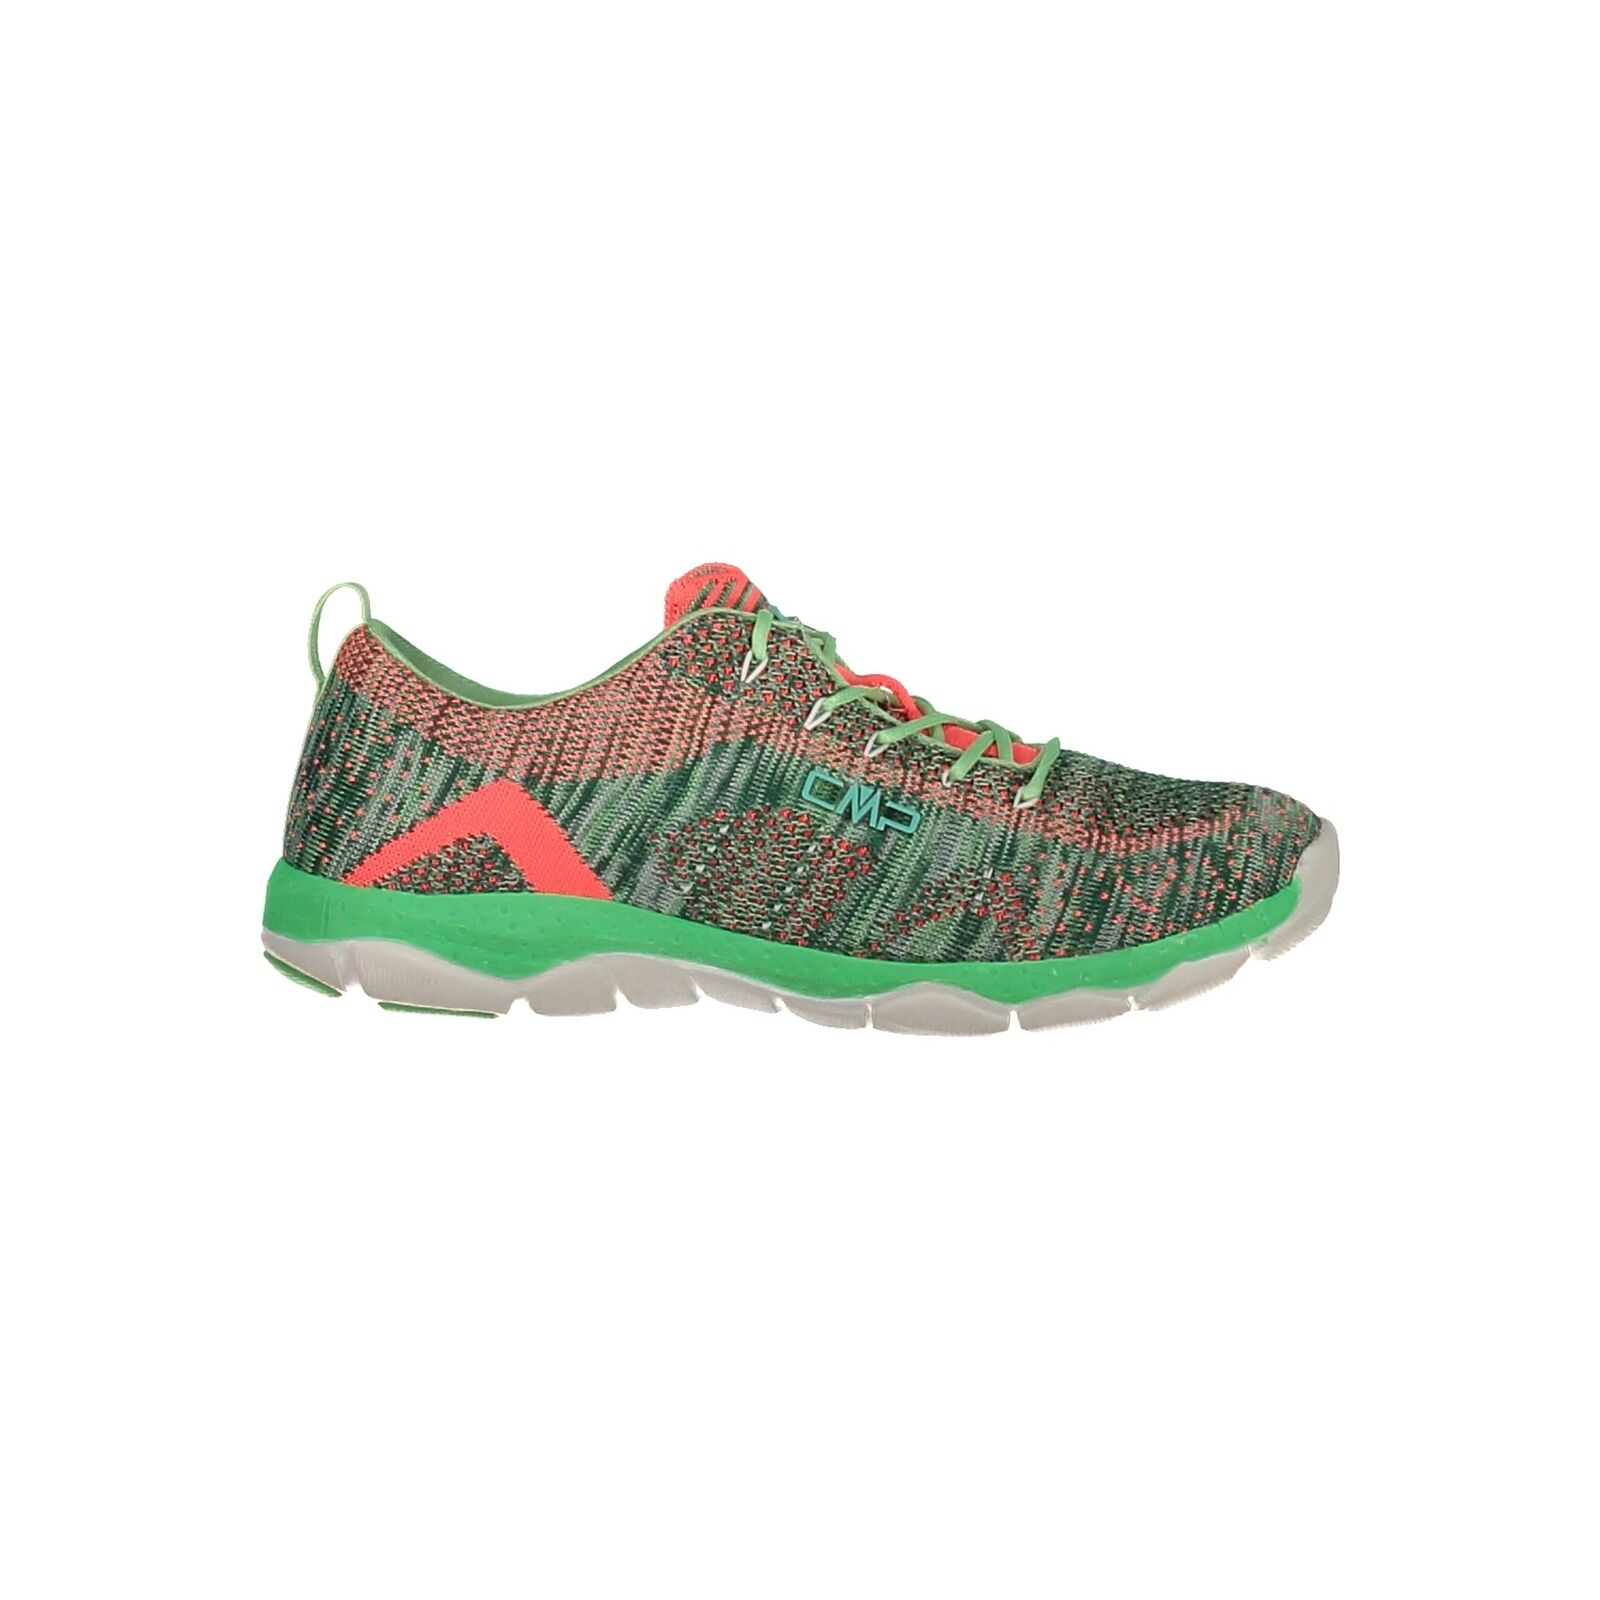 CMP Sneakers Butter Nebula Fitness shoes Green Breathable Lightweight   no minimum